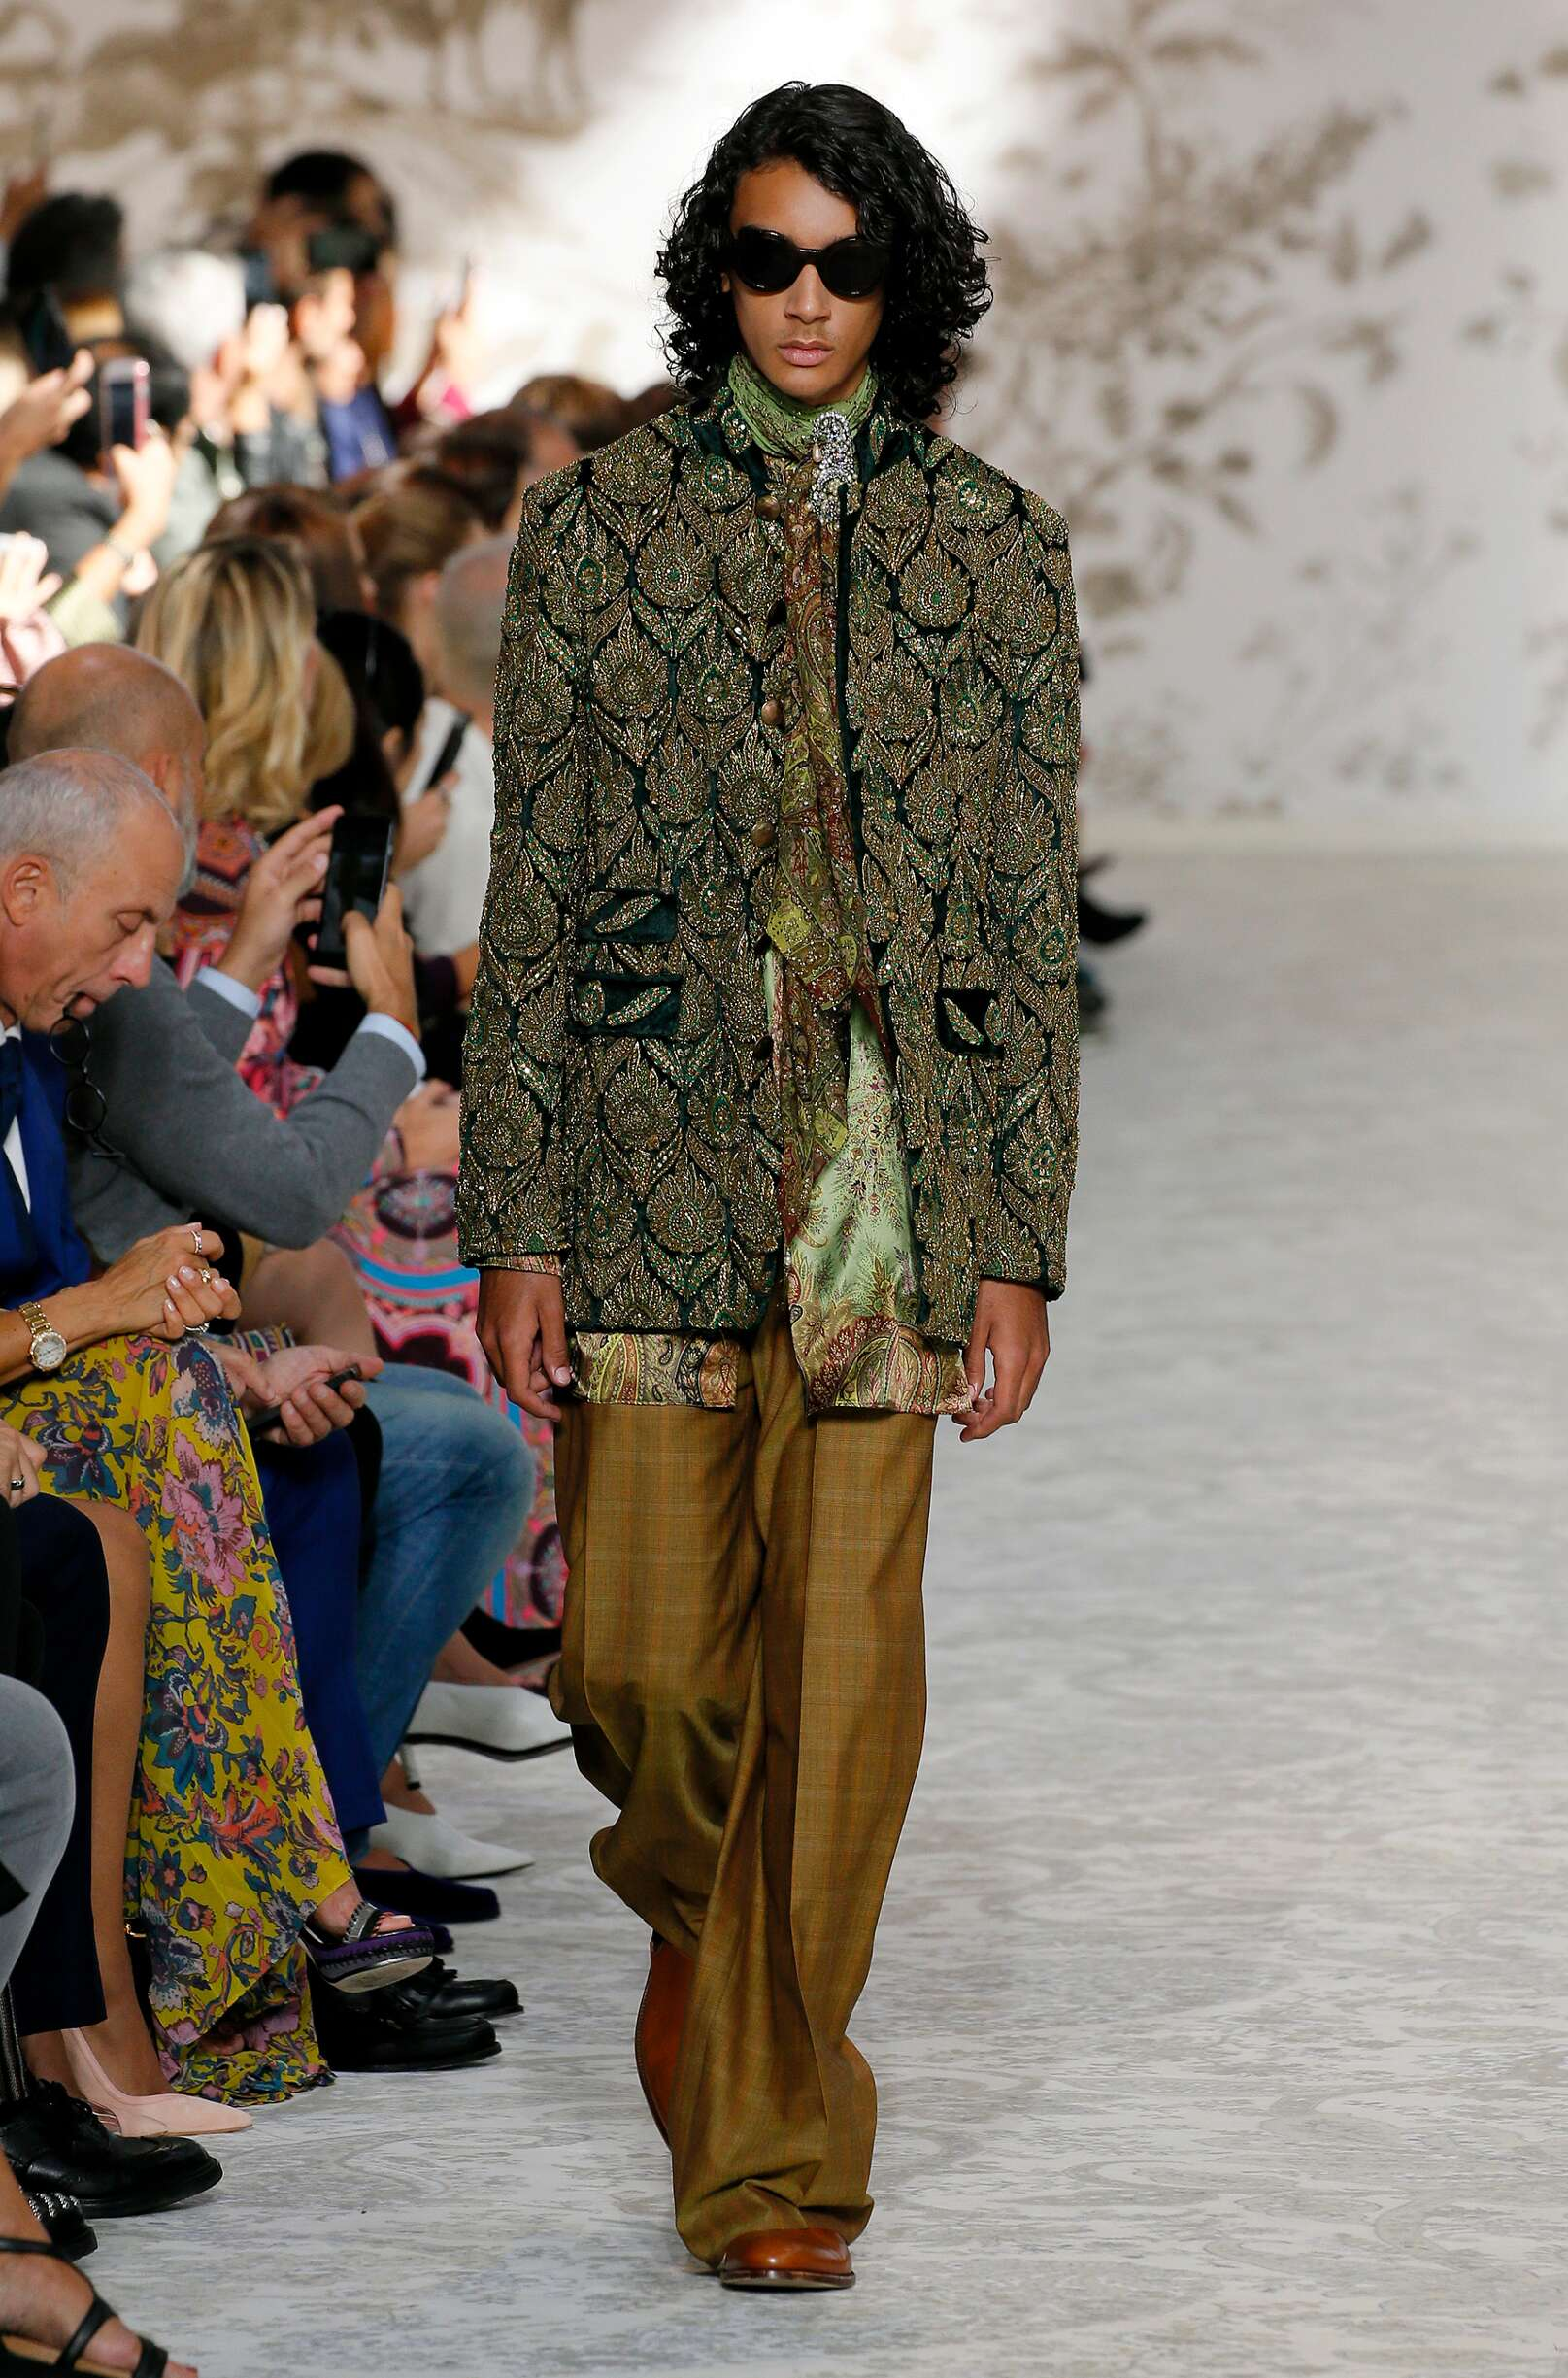 Etro Menswear Collection Trends Summer